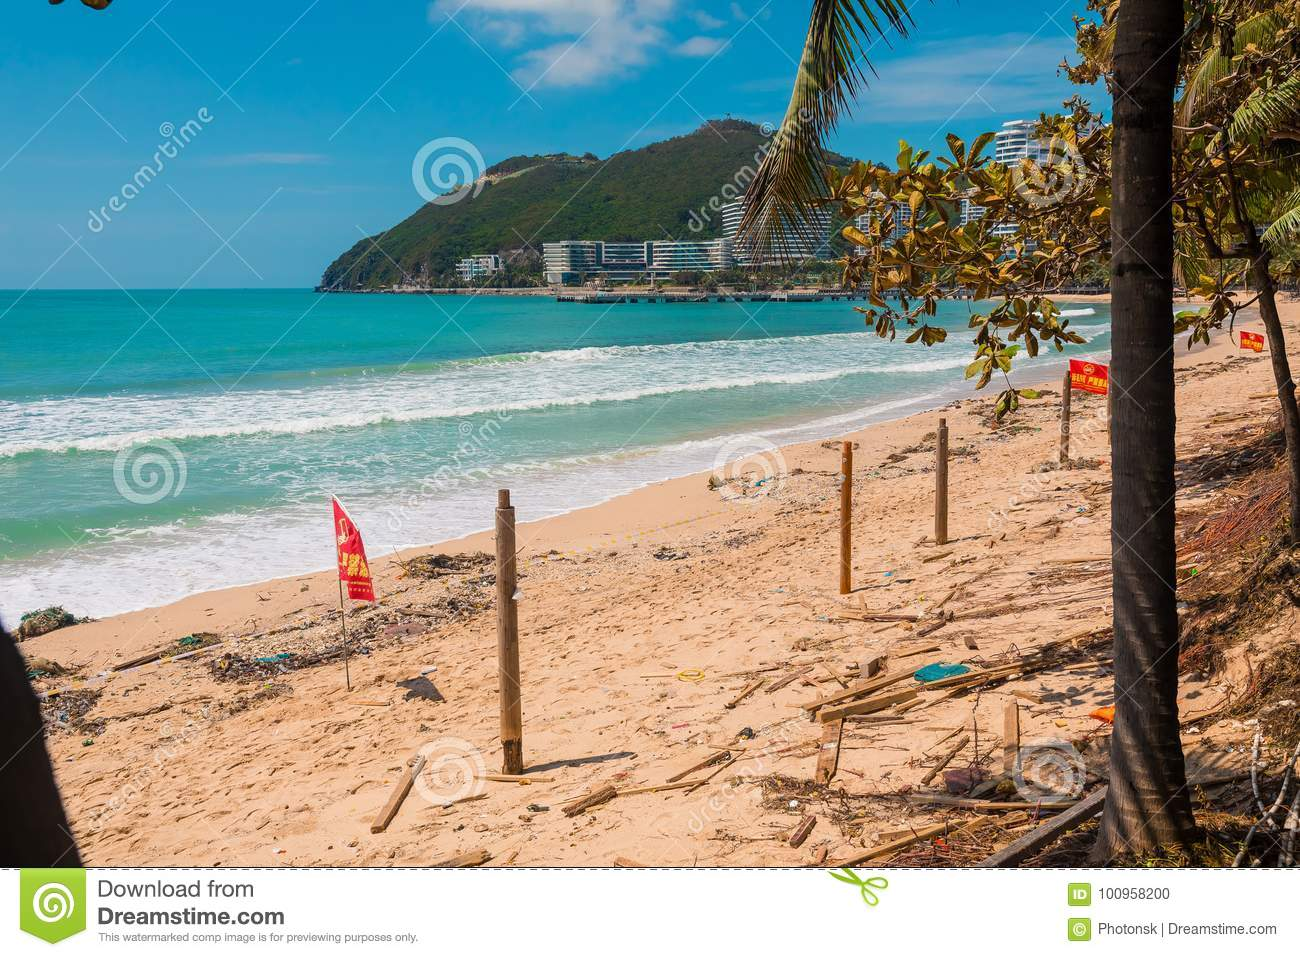 SANYA, CHINA - SEPTEMBER 28, 2017: Consequences after typhoon, on the island of Hainan. Destructions after night